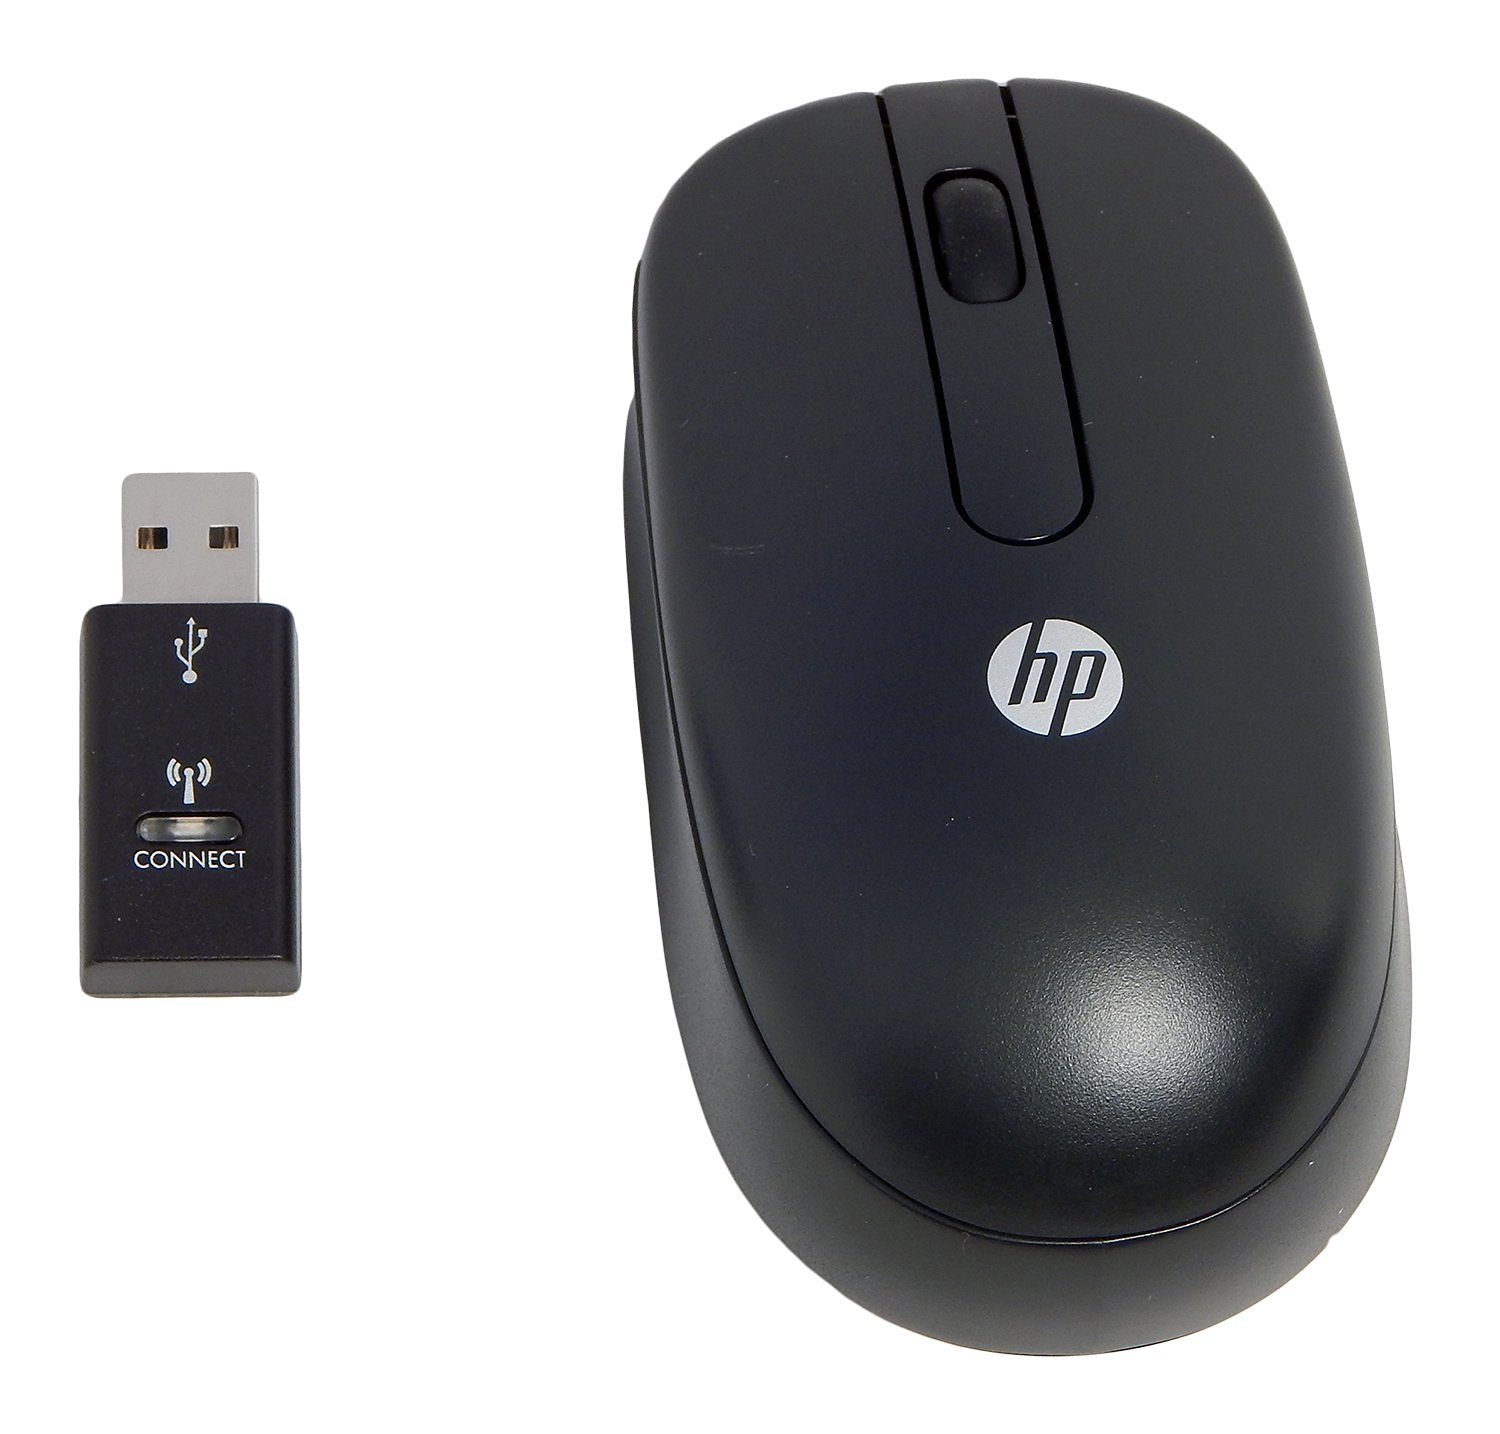 HP MOUSE MG-0856 WINDOWS 8 DRIVER